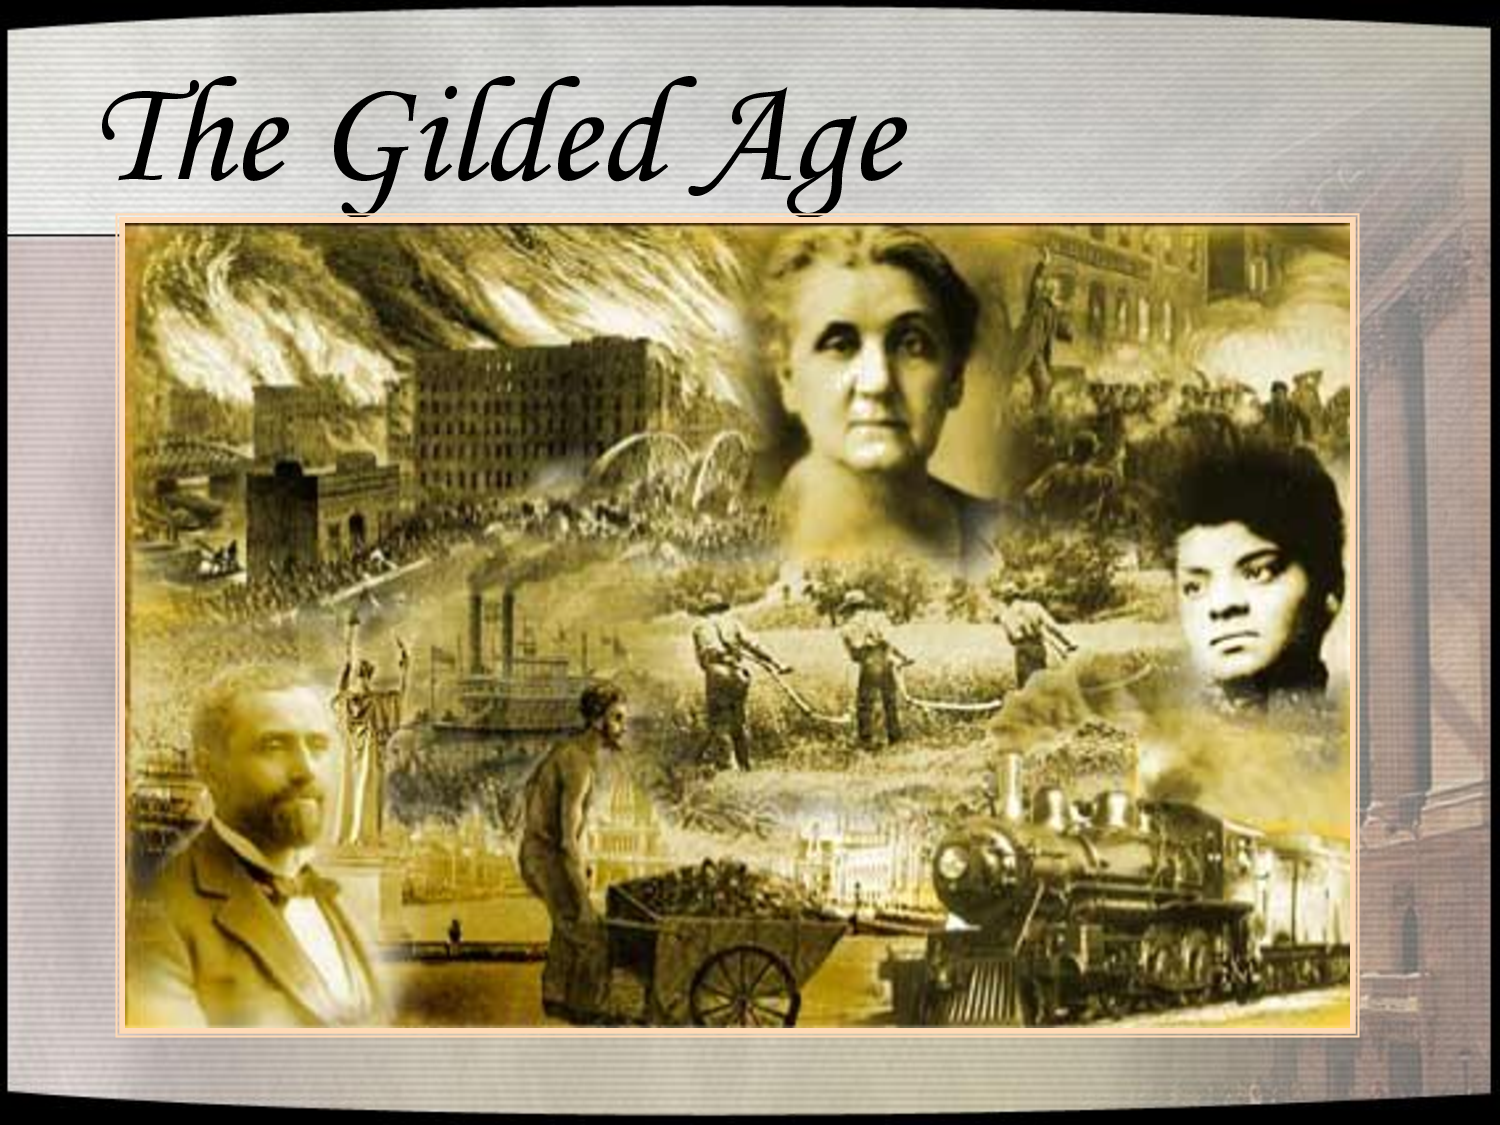 apush gilded age Period 6: 1865-1898 timeline documents videos key concept 63: the gilded age produced new cultural and intellectual movements, public reform efforts.